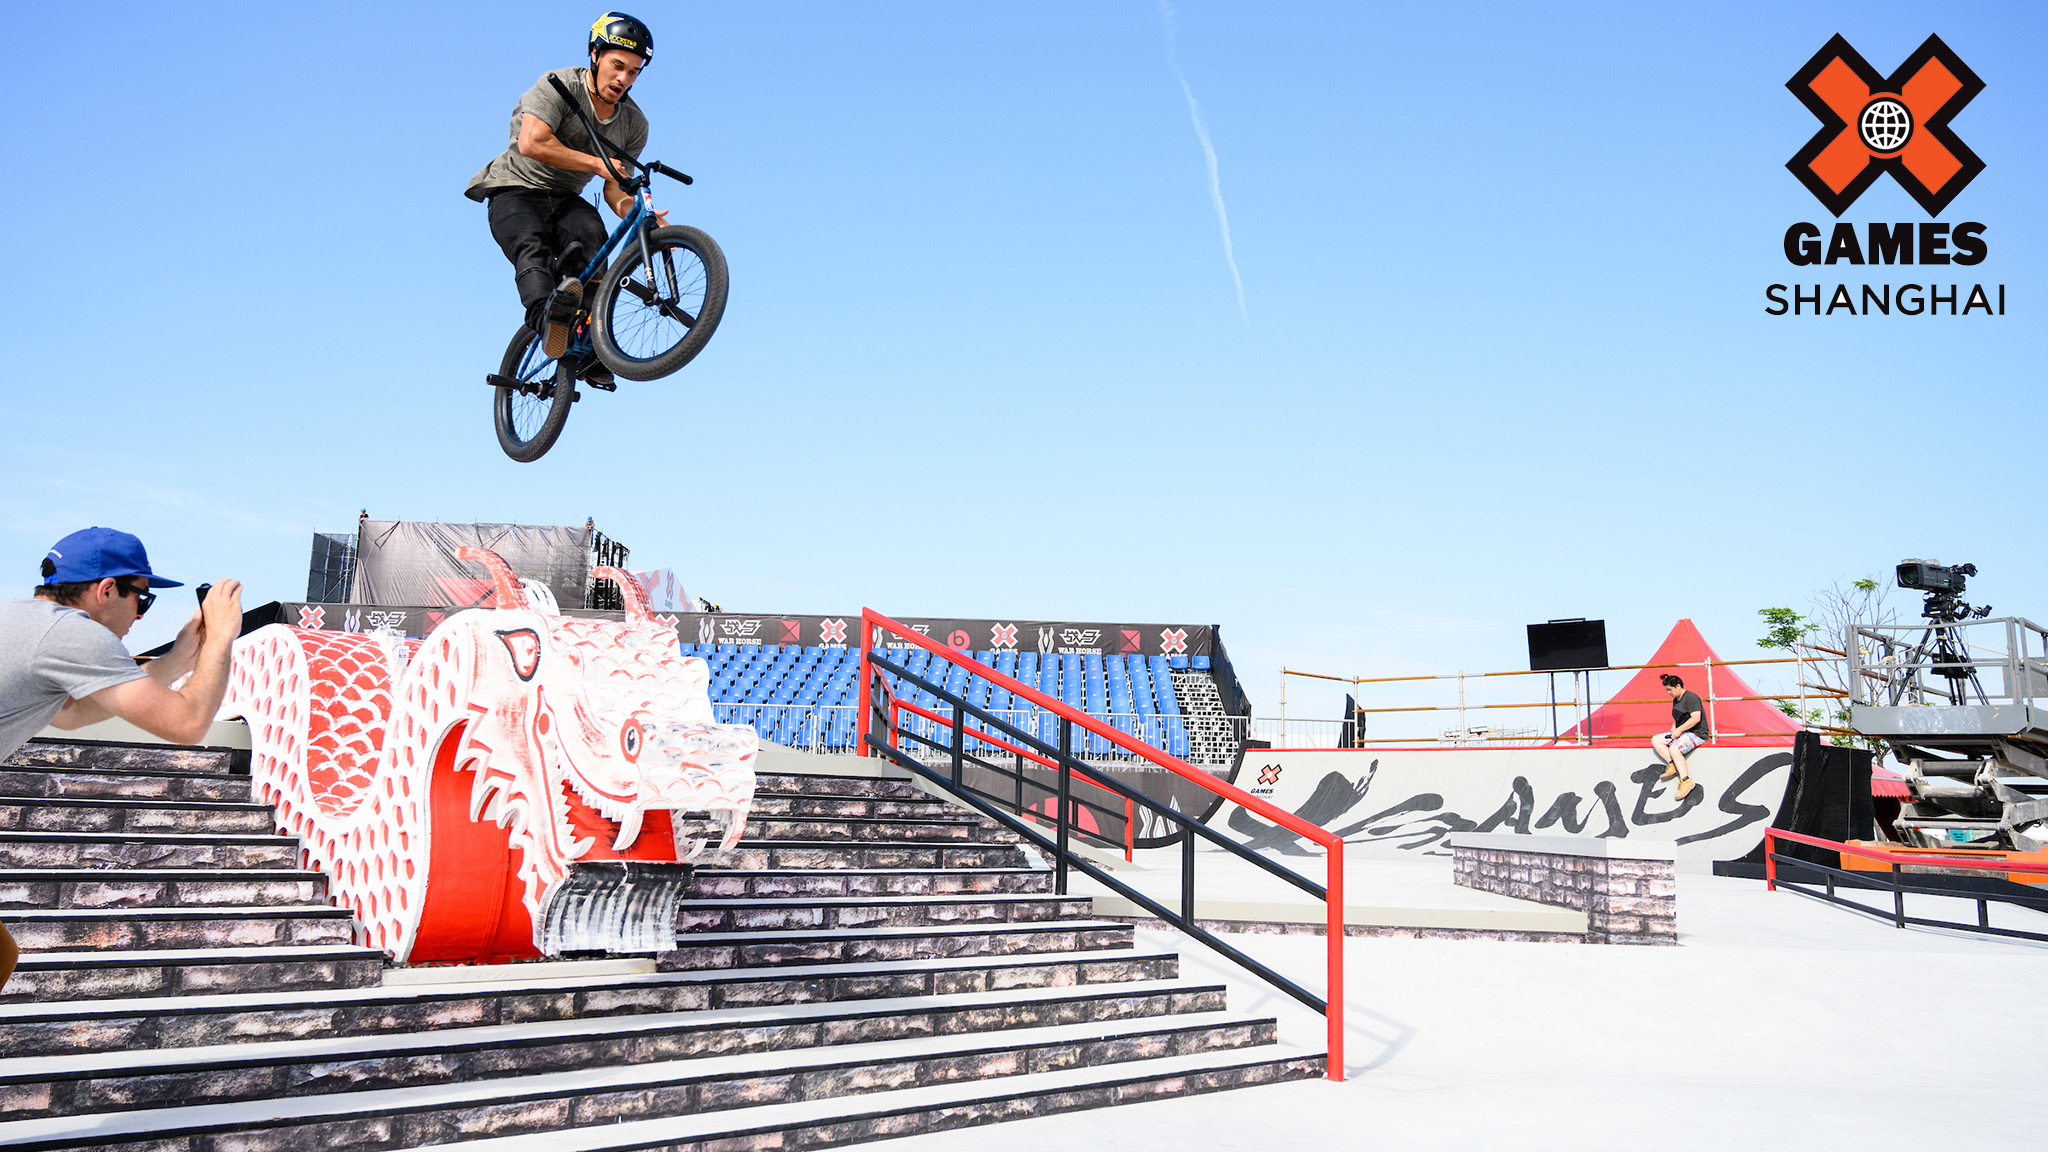 X Games Shanghai 2019: Course Previews